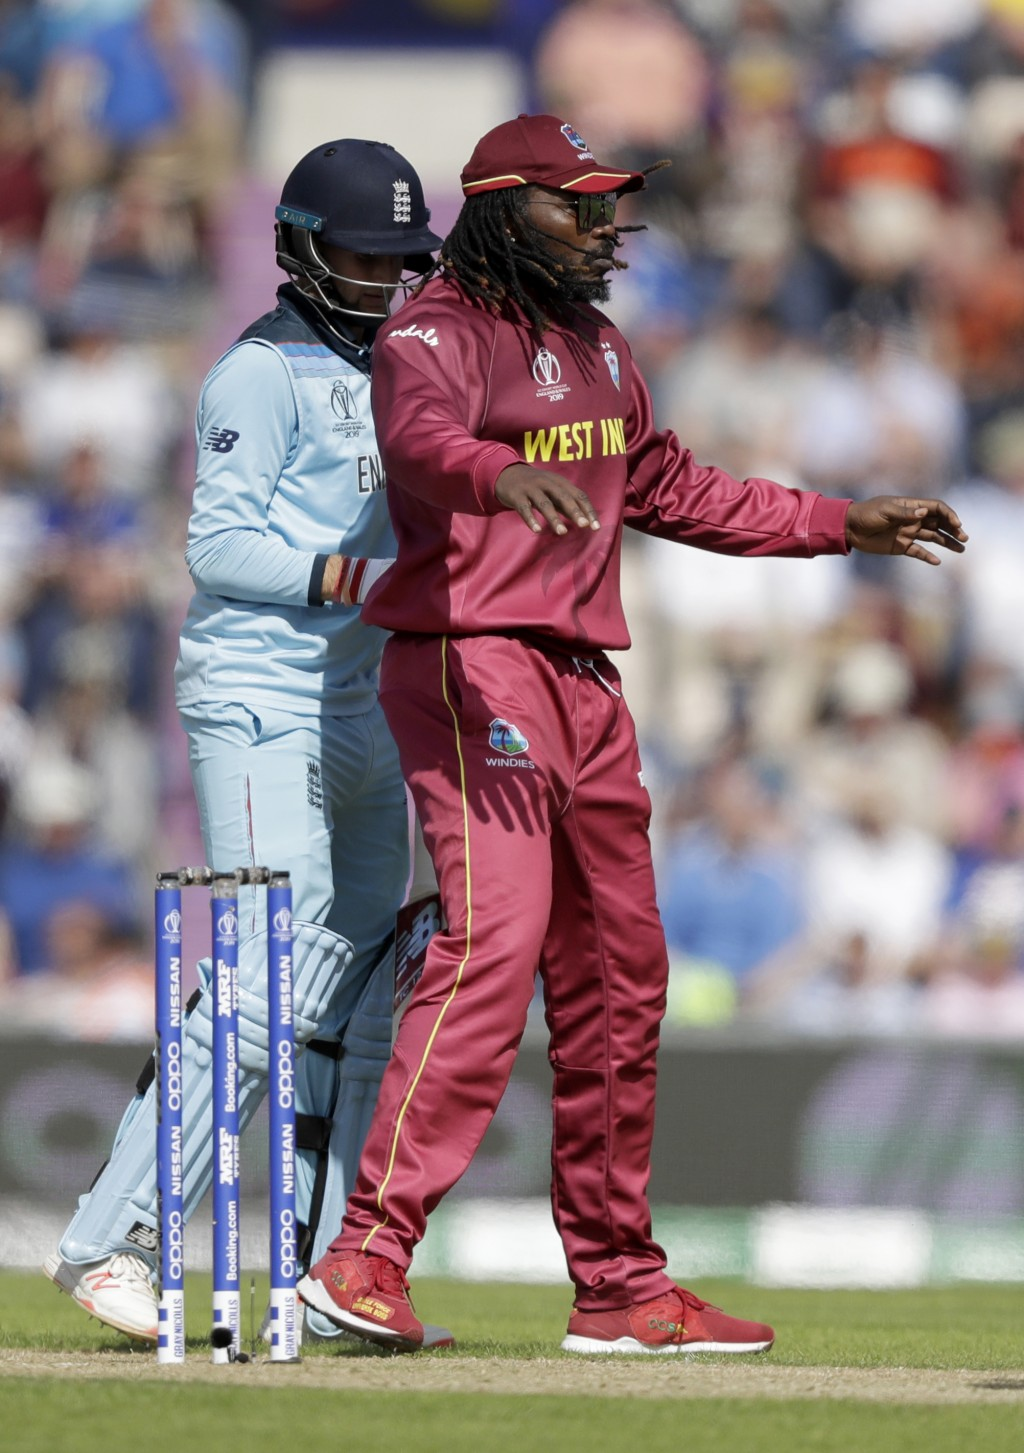 West Indies' Chris Gayle, right, jokingly blocks the way of England's Joe Root during one of his spin bowling overs during the Cricket World Cup match